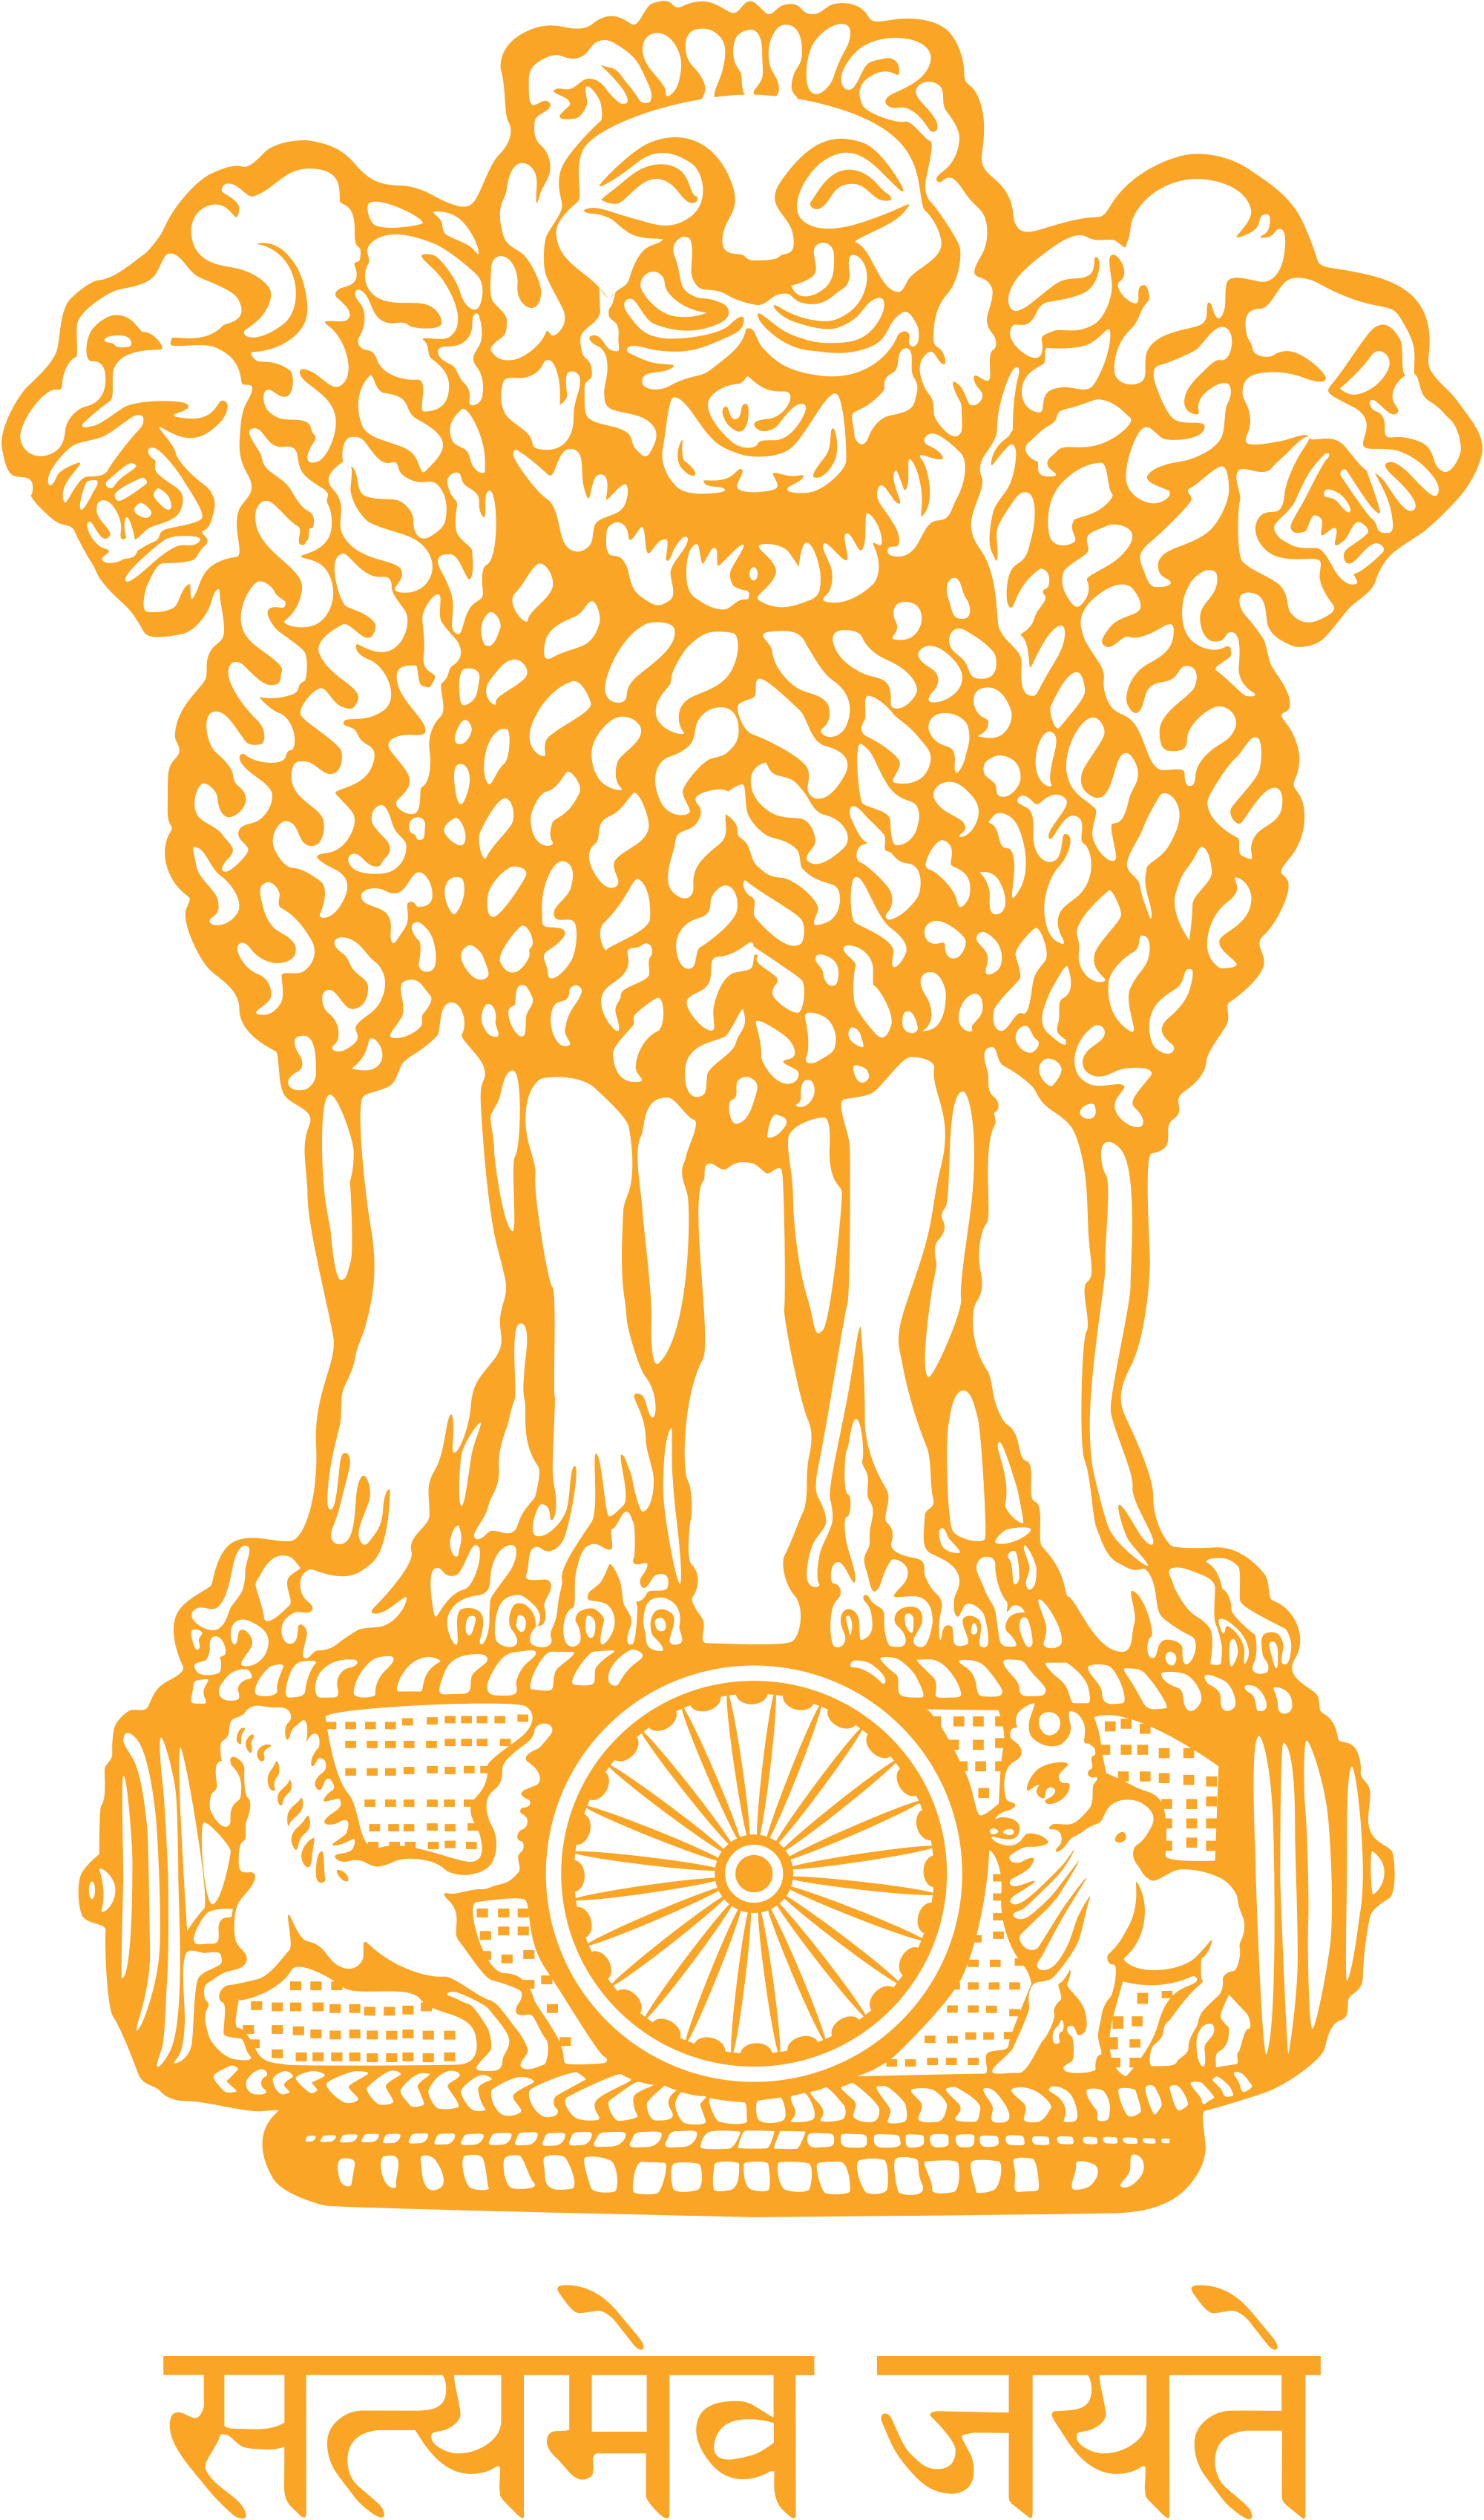 Government of india logo download free clip art with a.